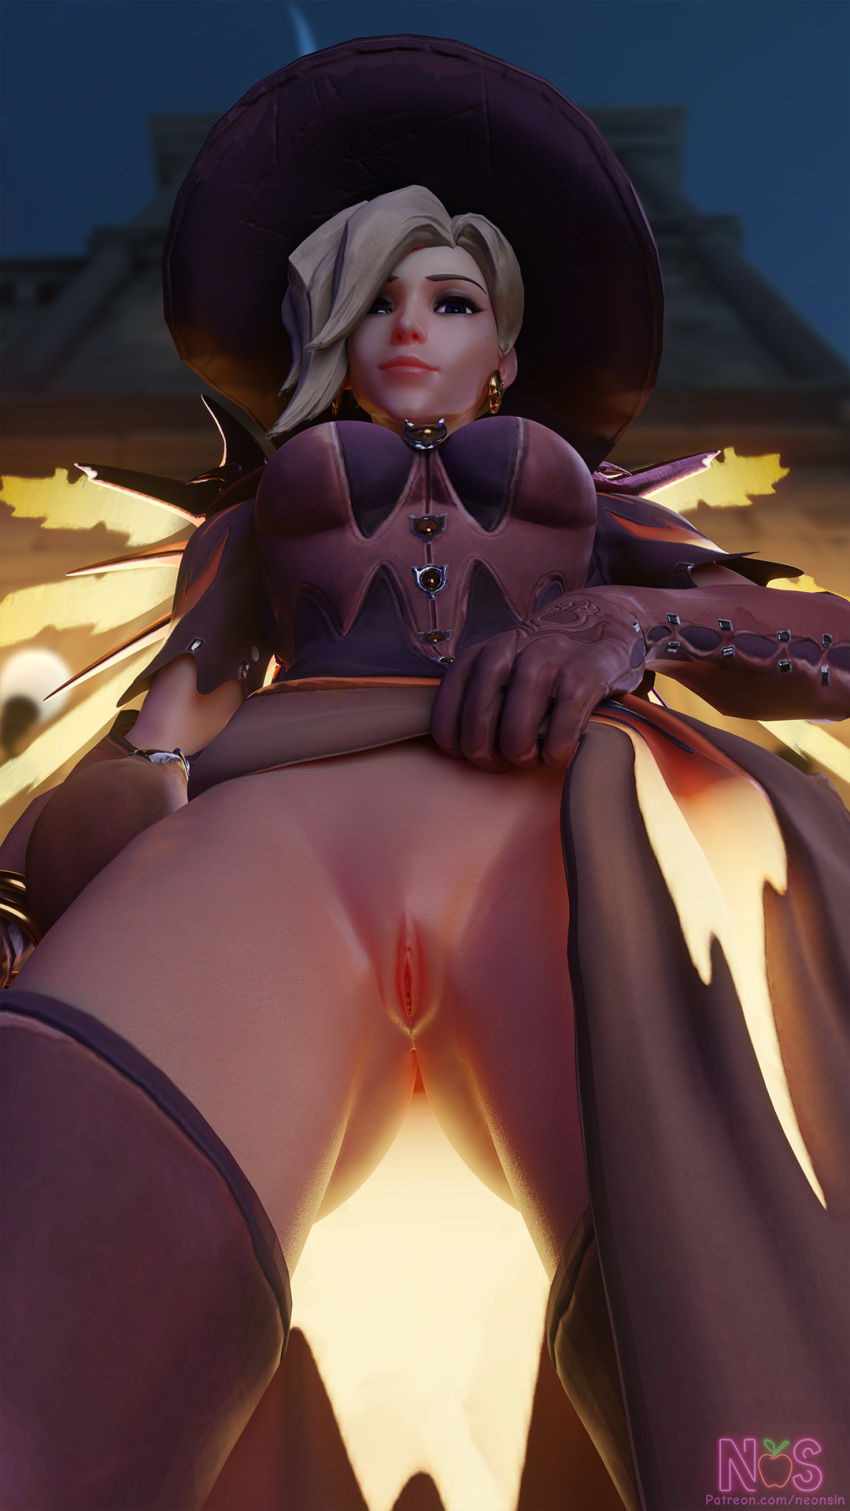 overwatch-porn-hentai-–-witch-mercy,-witch-hat,-exposed-nipples,-witch,-mercy,-looking-at-viewer.